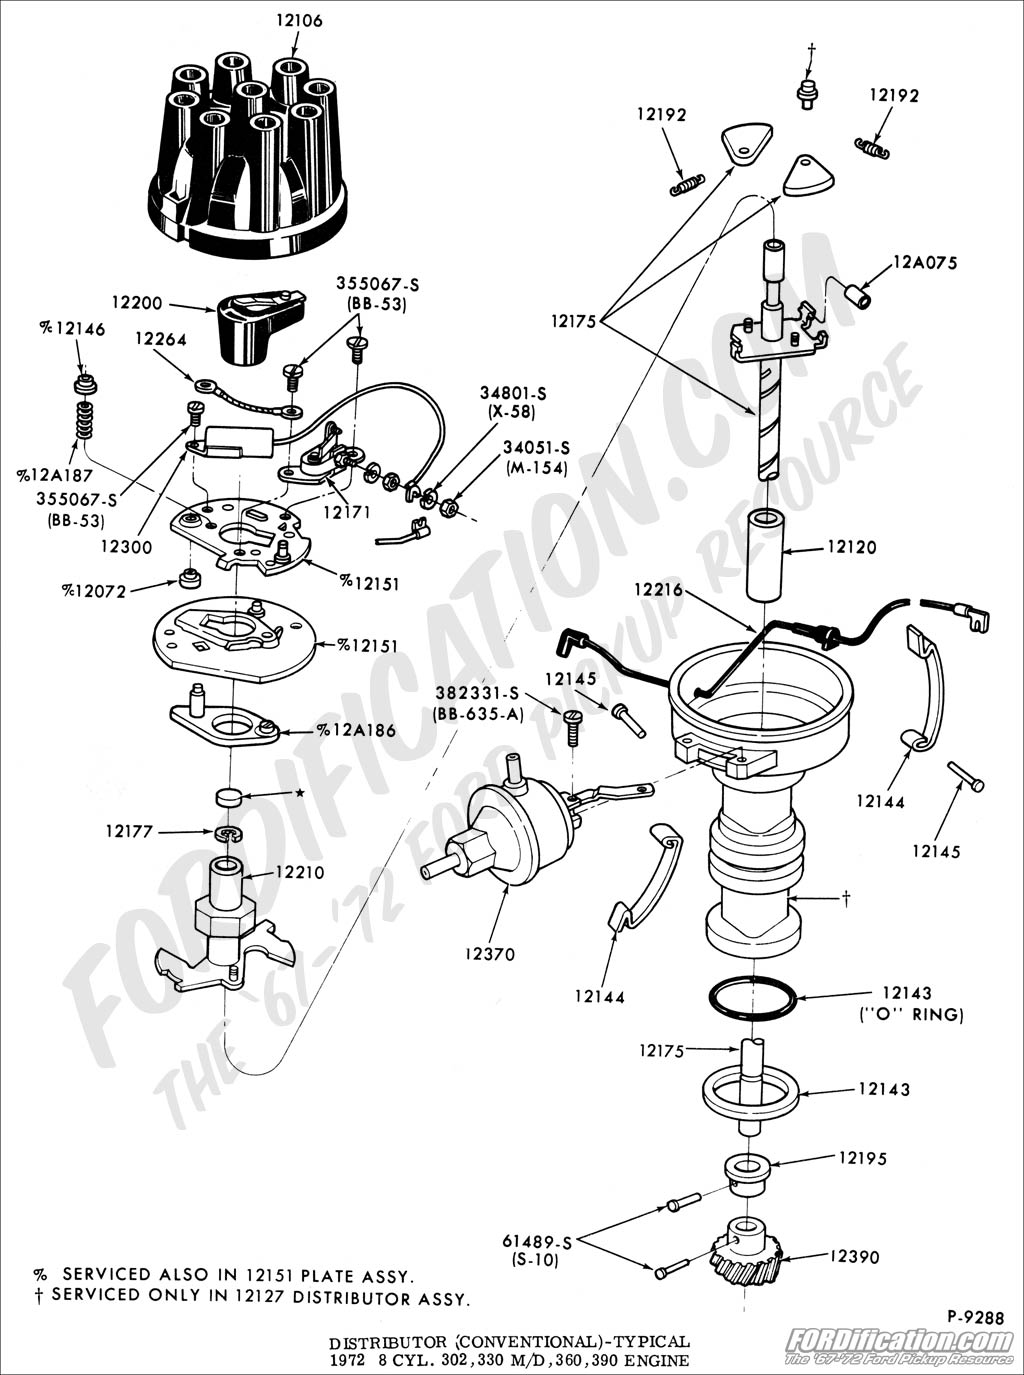 Ford 302 Distributor Wiring Diagram 35 Images Gm Hei Harness V8 02 Truck Technical Drawings And Schematics Section I At